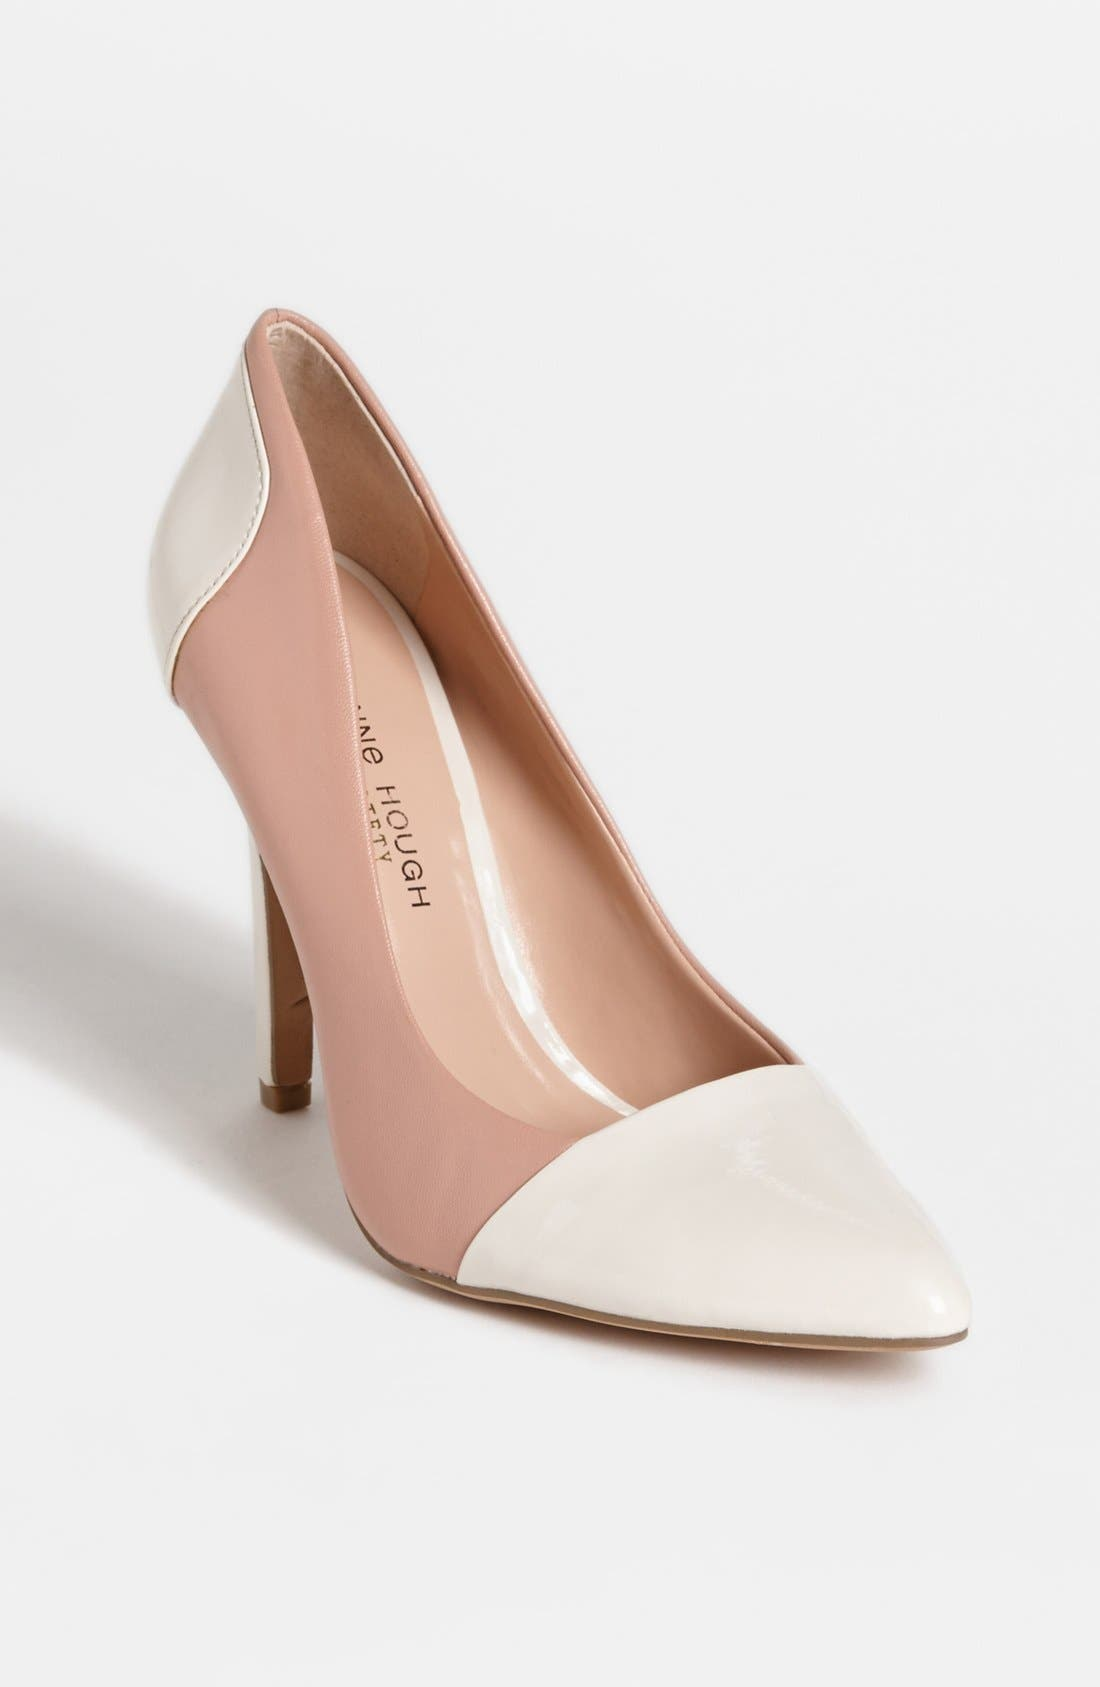 Alternate Image 1 Selected - Julianne Hough for Sole Society 'Blakeley' Pump